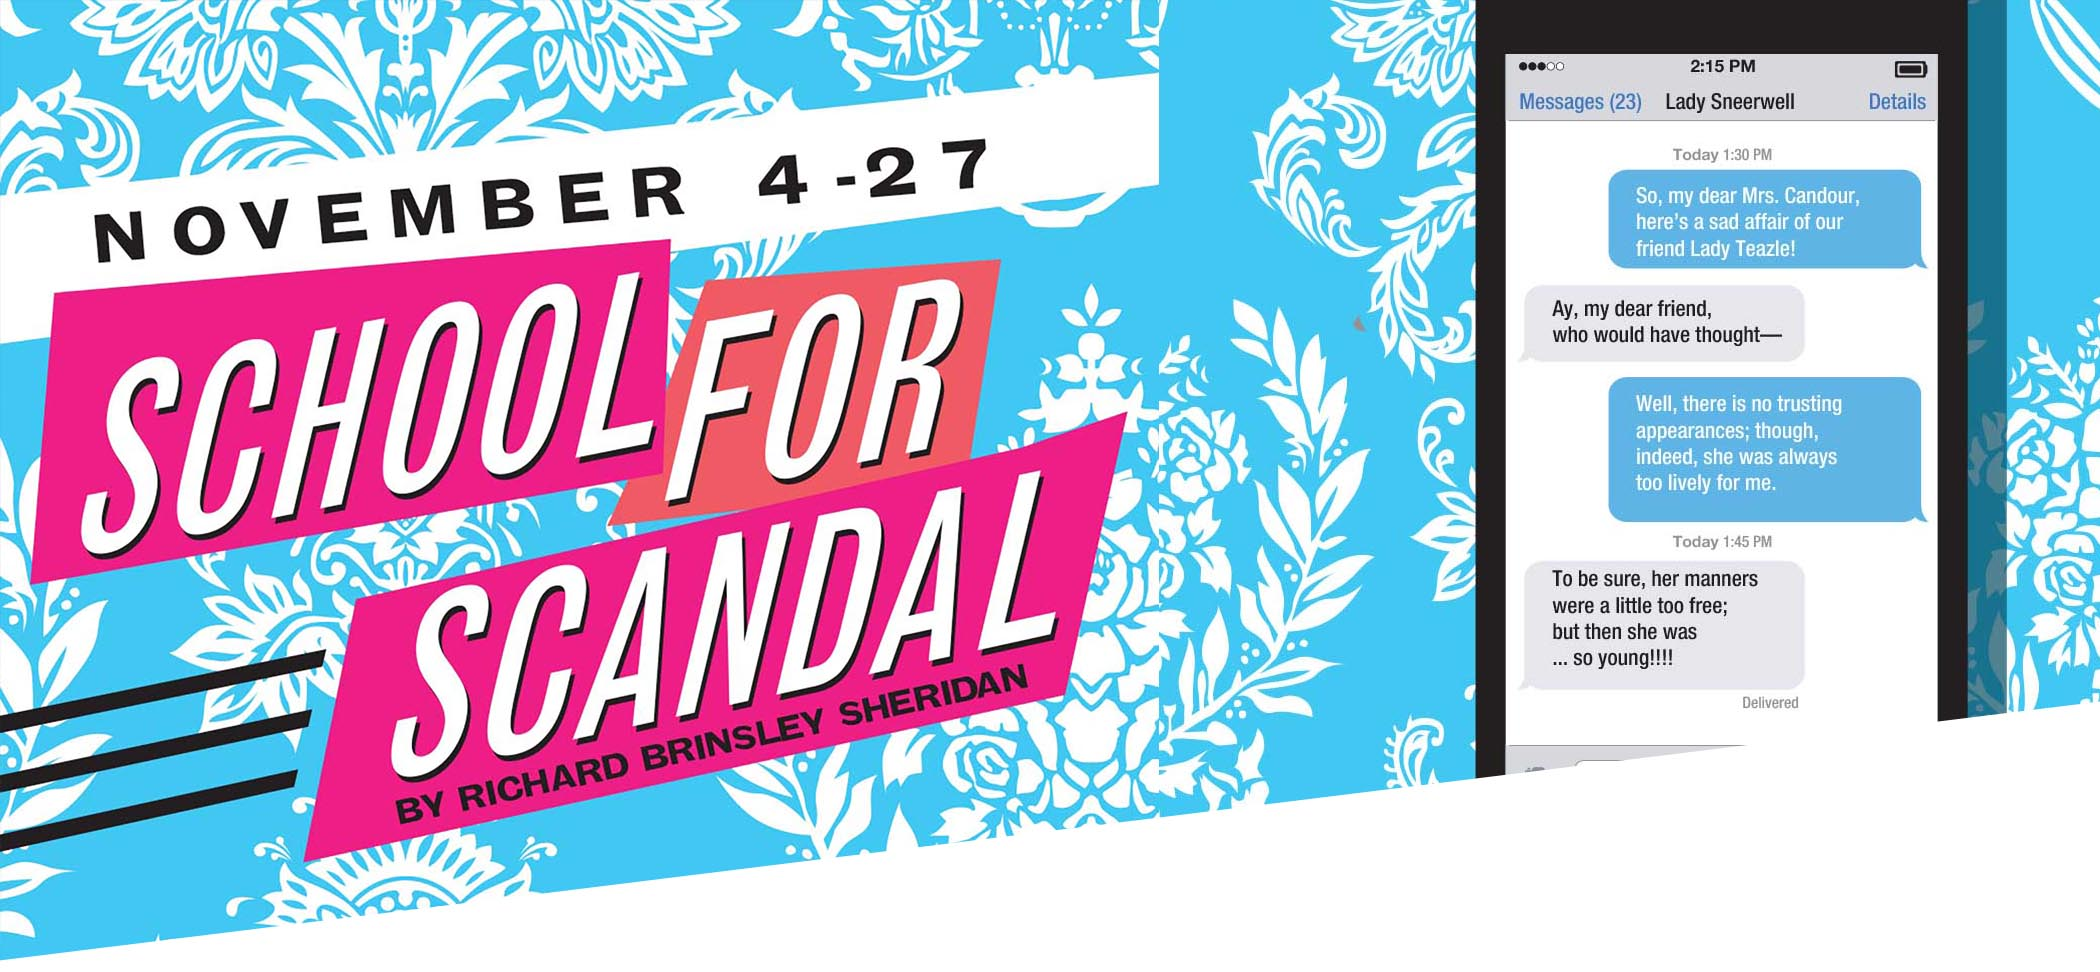 School-For-Scandal-Header-San Antonio